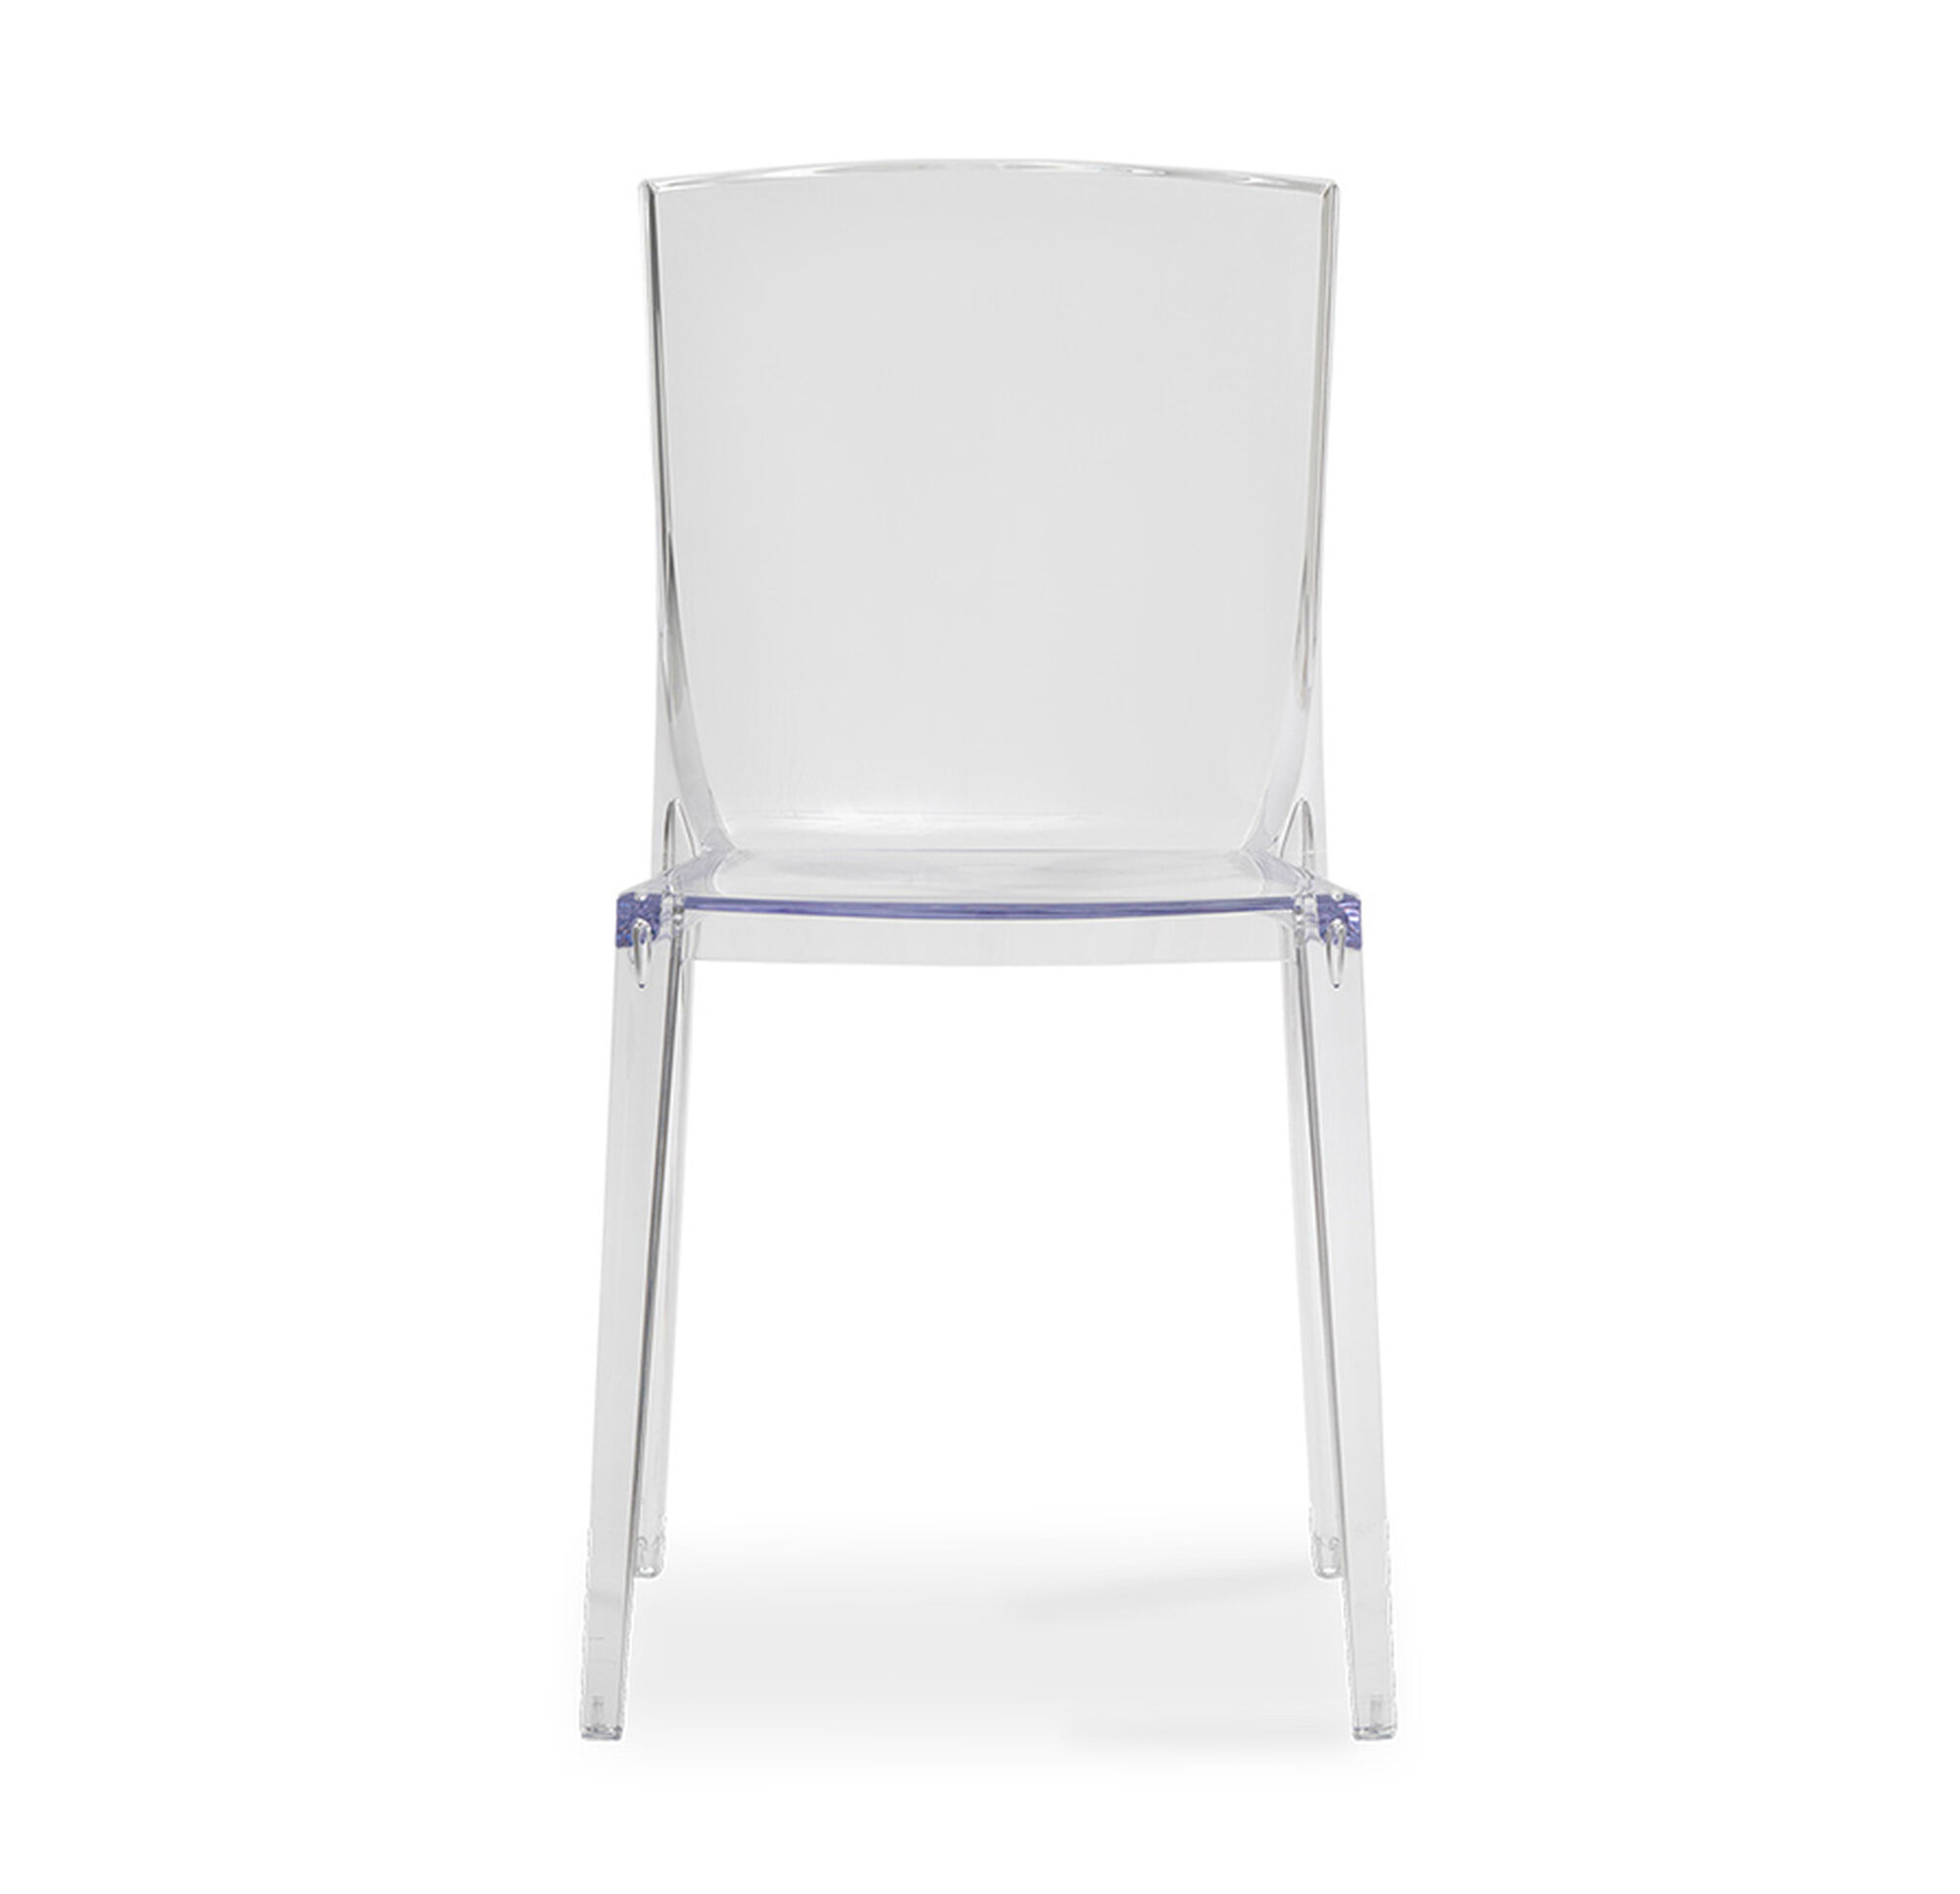 New Clear Folding Chairs New